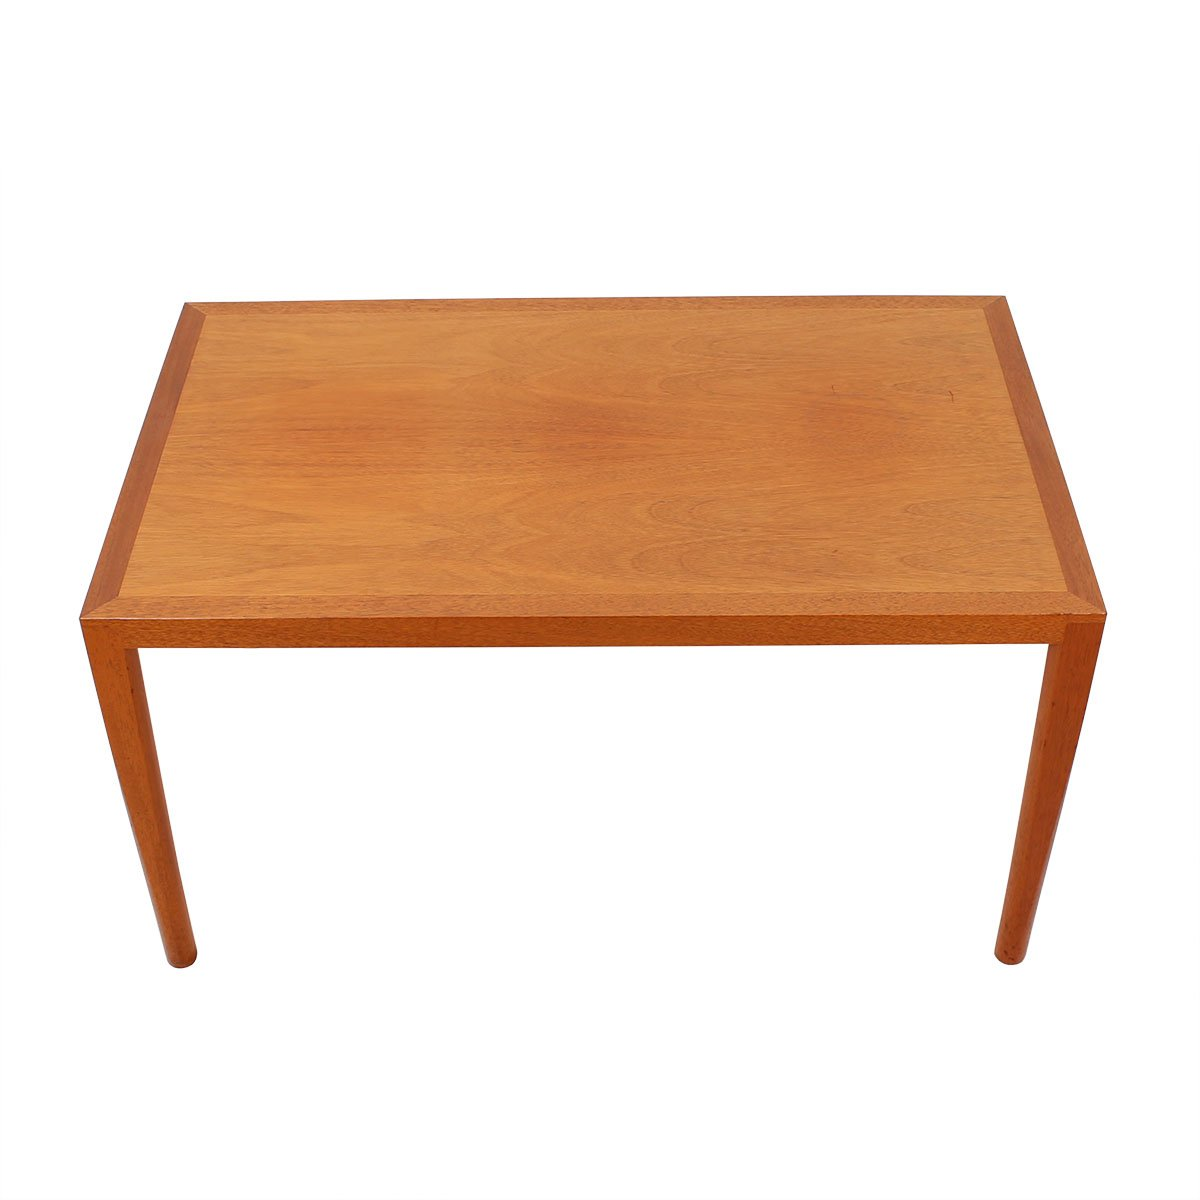 Danish Mid Century Tall Rectangular Coffee Table